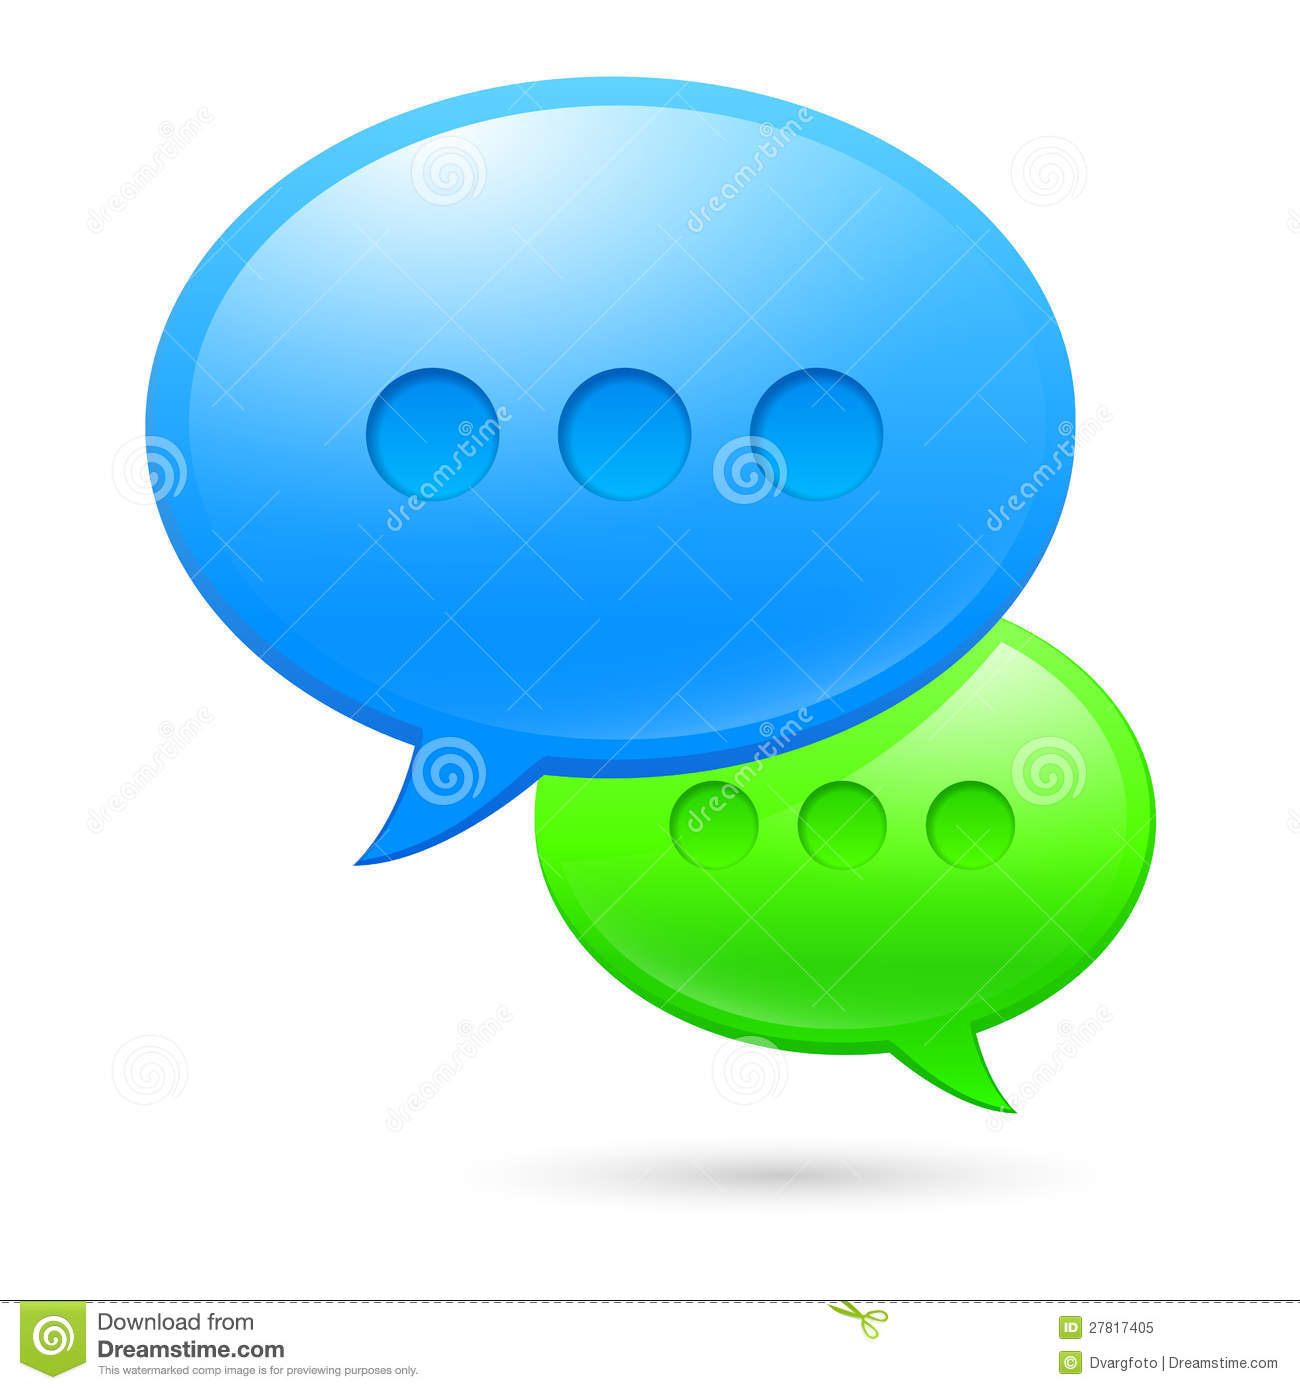 Text message icon clipart svg freeuse stock Sms Icons Sms Royalty Free Stock Photo - Image: 27817405 svg freeuse stock